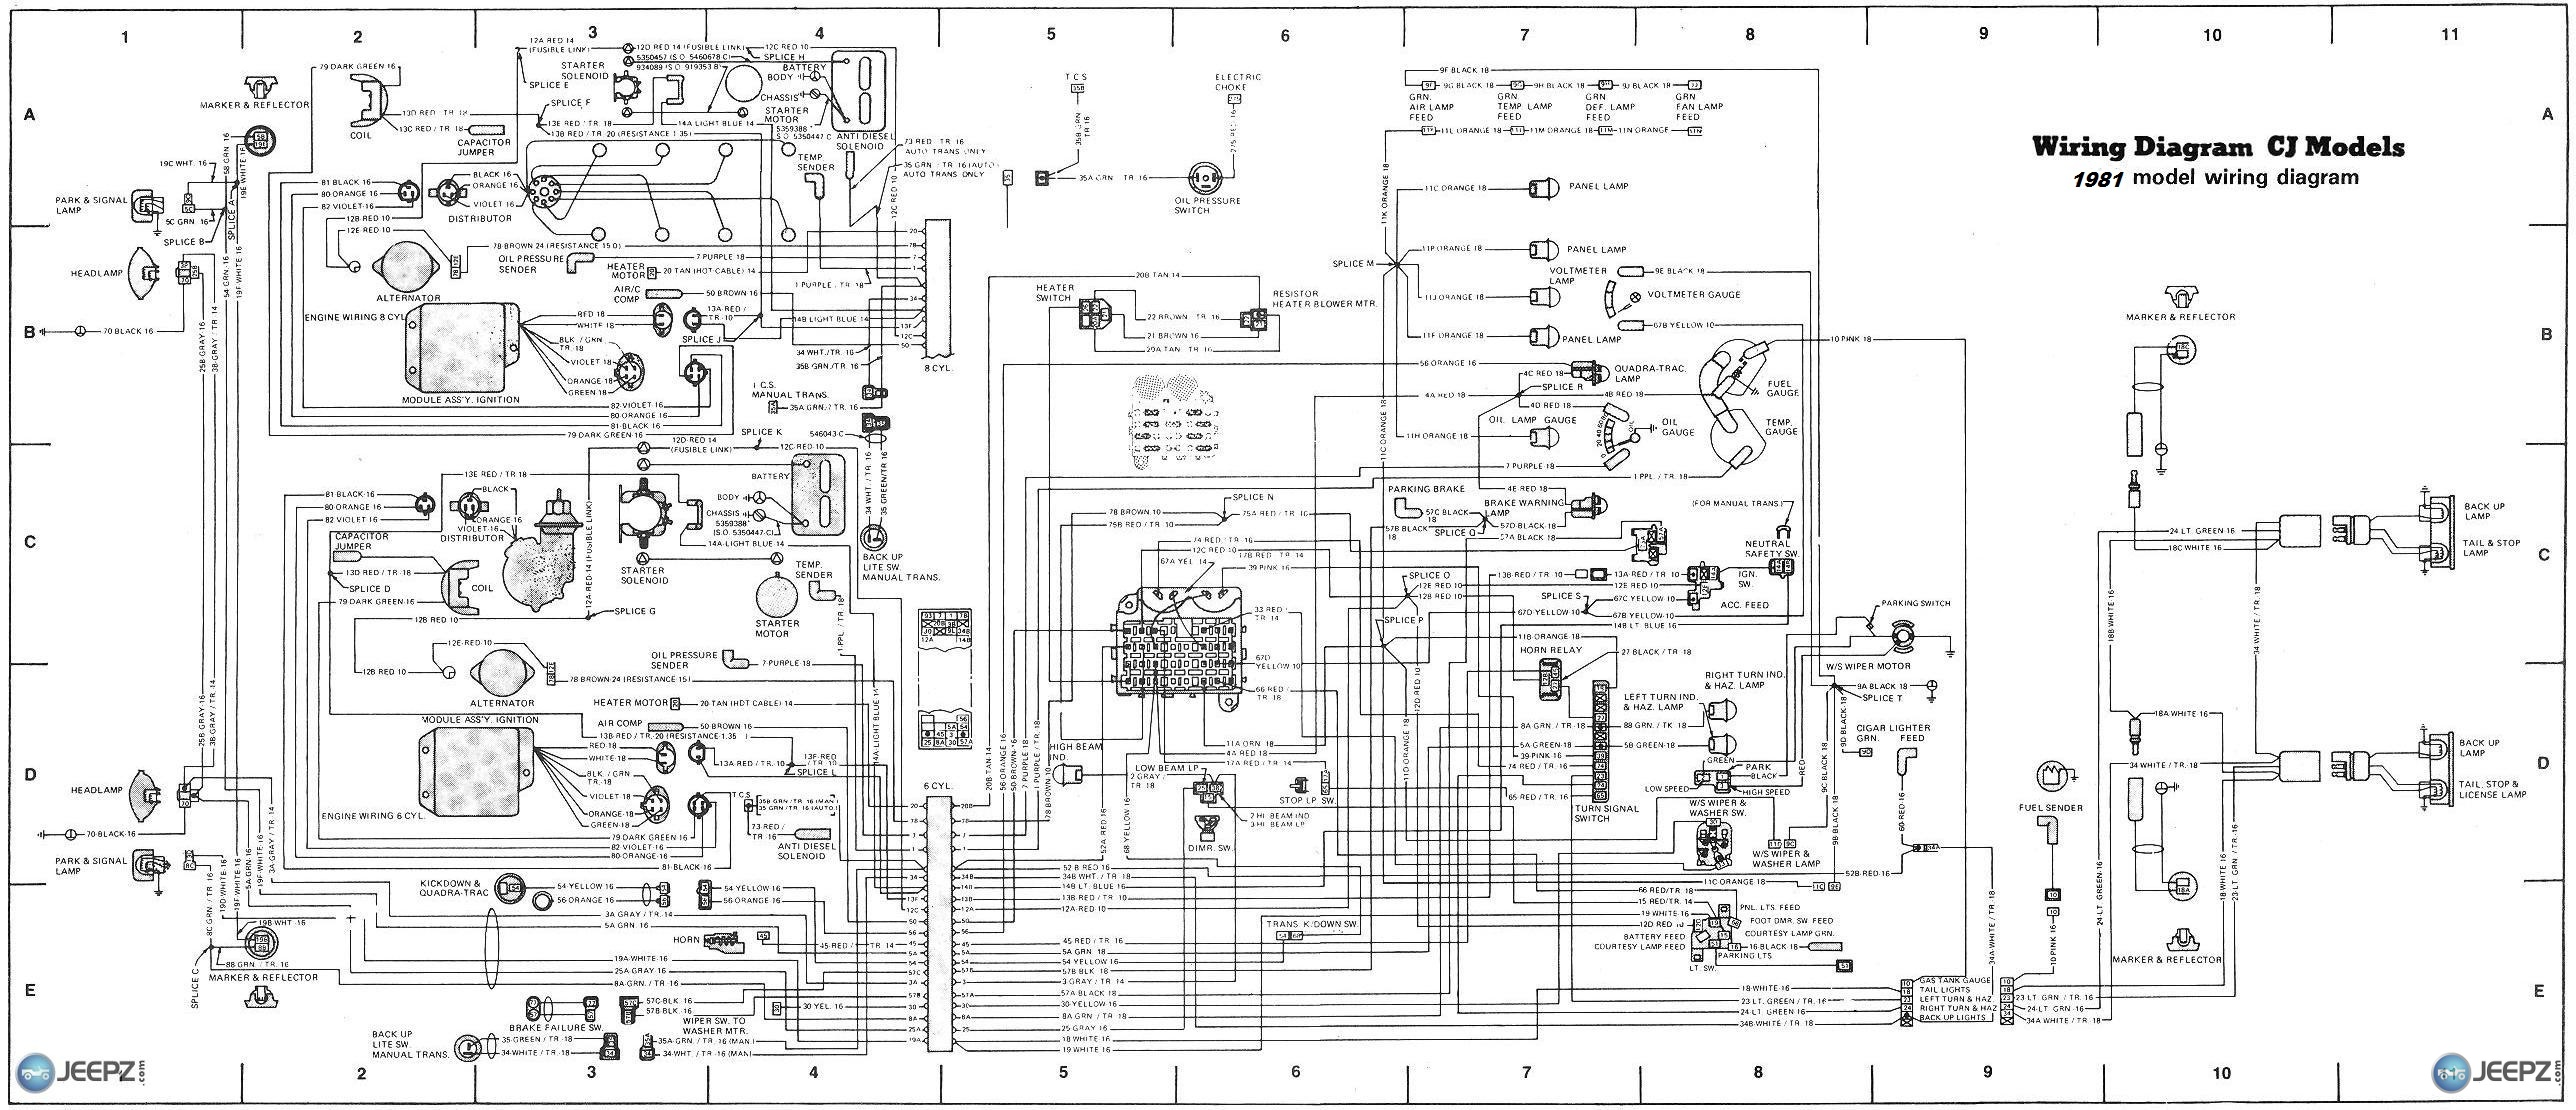 1986 F150 Fuel Gauge Wiring Diagram Free Picture Simple Guide A Amp E 82 Toyota Corolla Cj 7 Wire